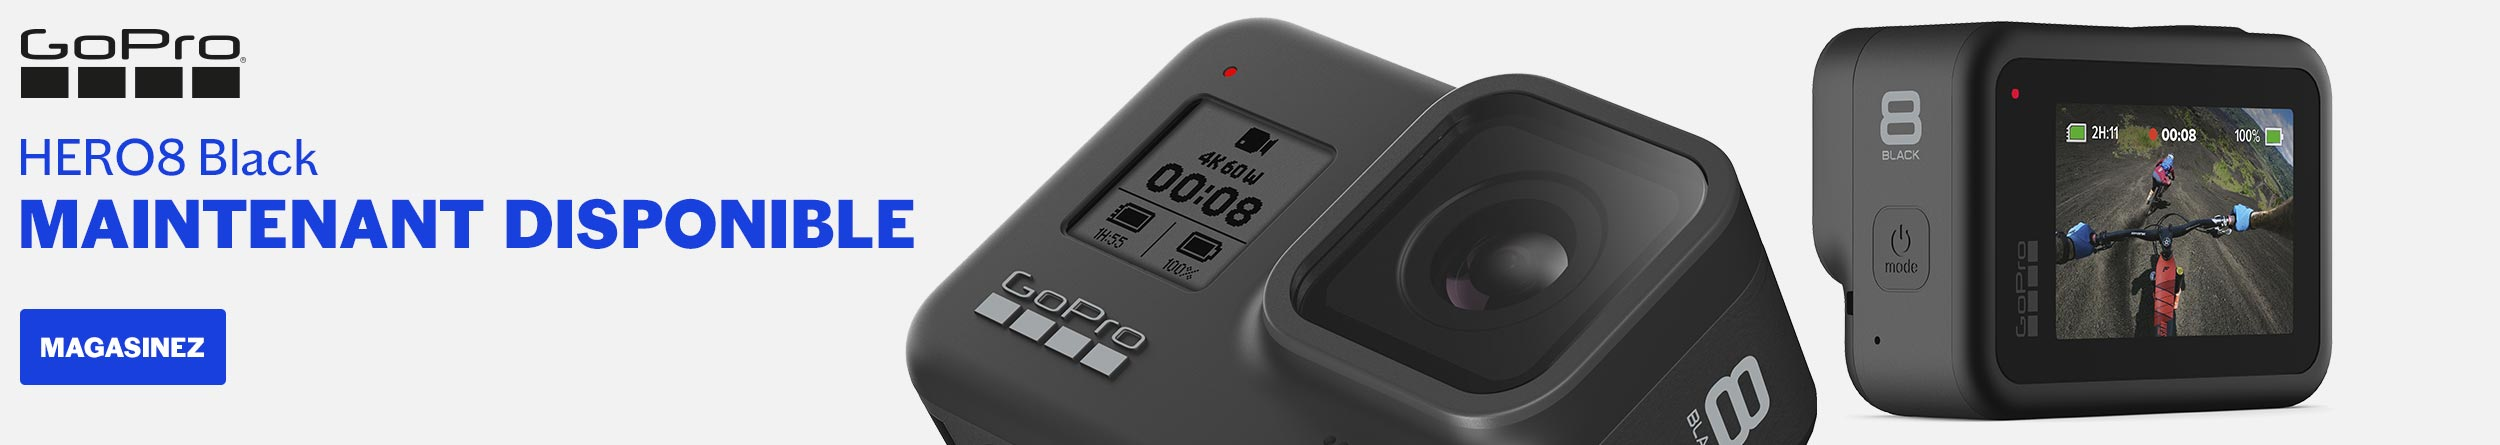 GOPRO HERO8 BLACK MAINTENANT DISPONIBLE